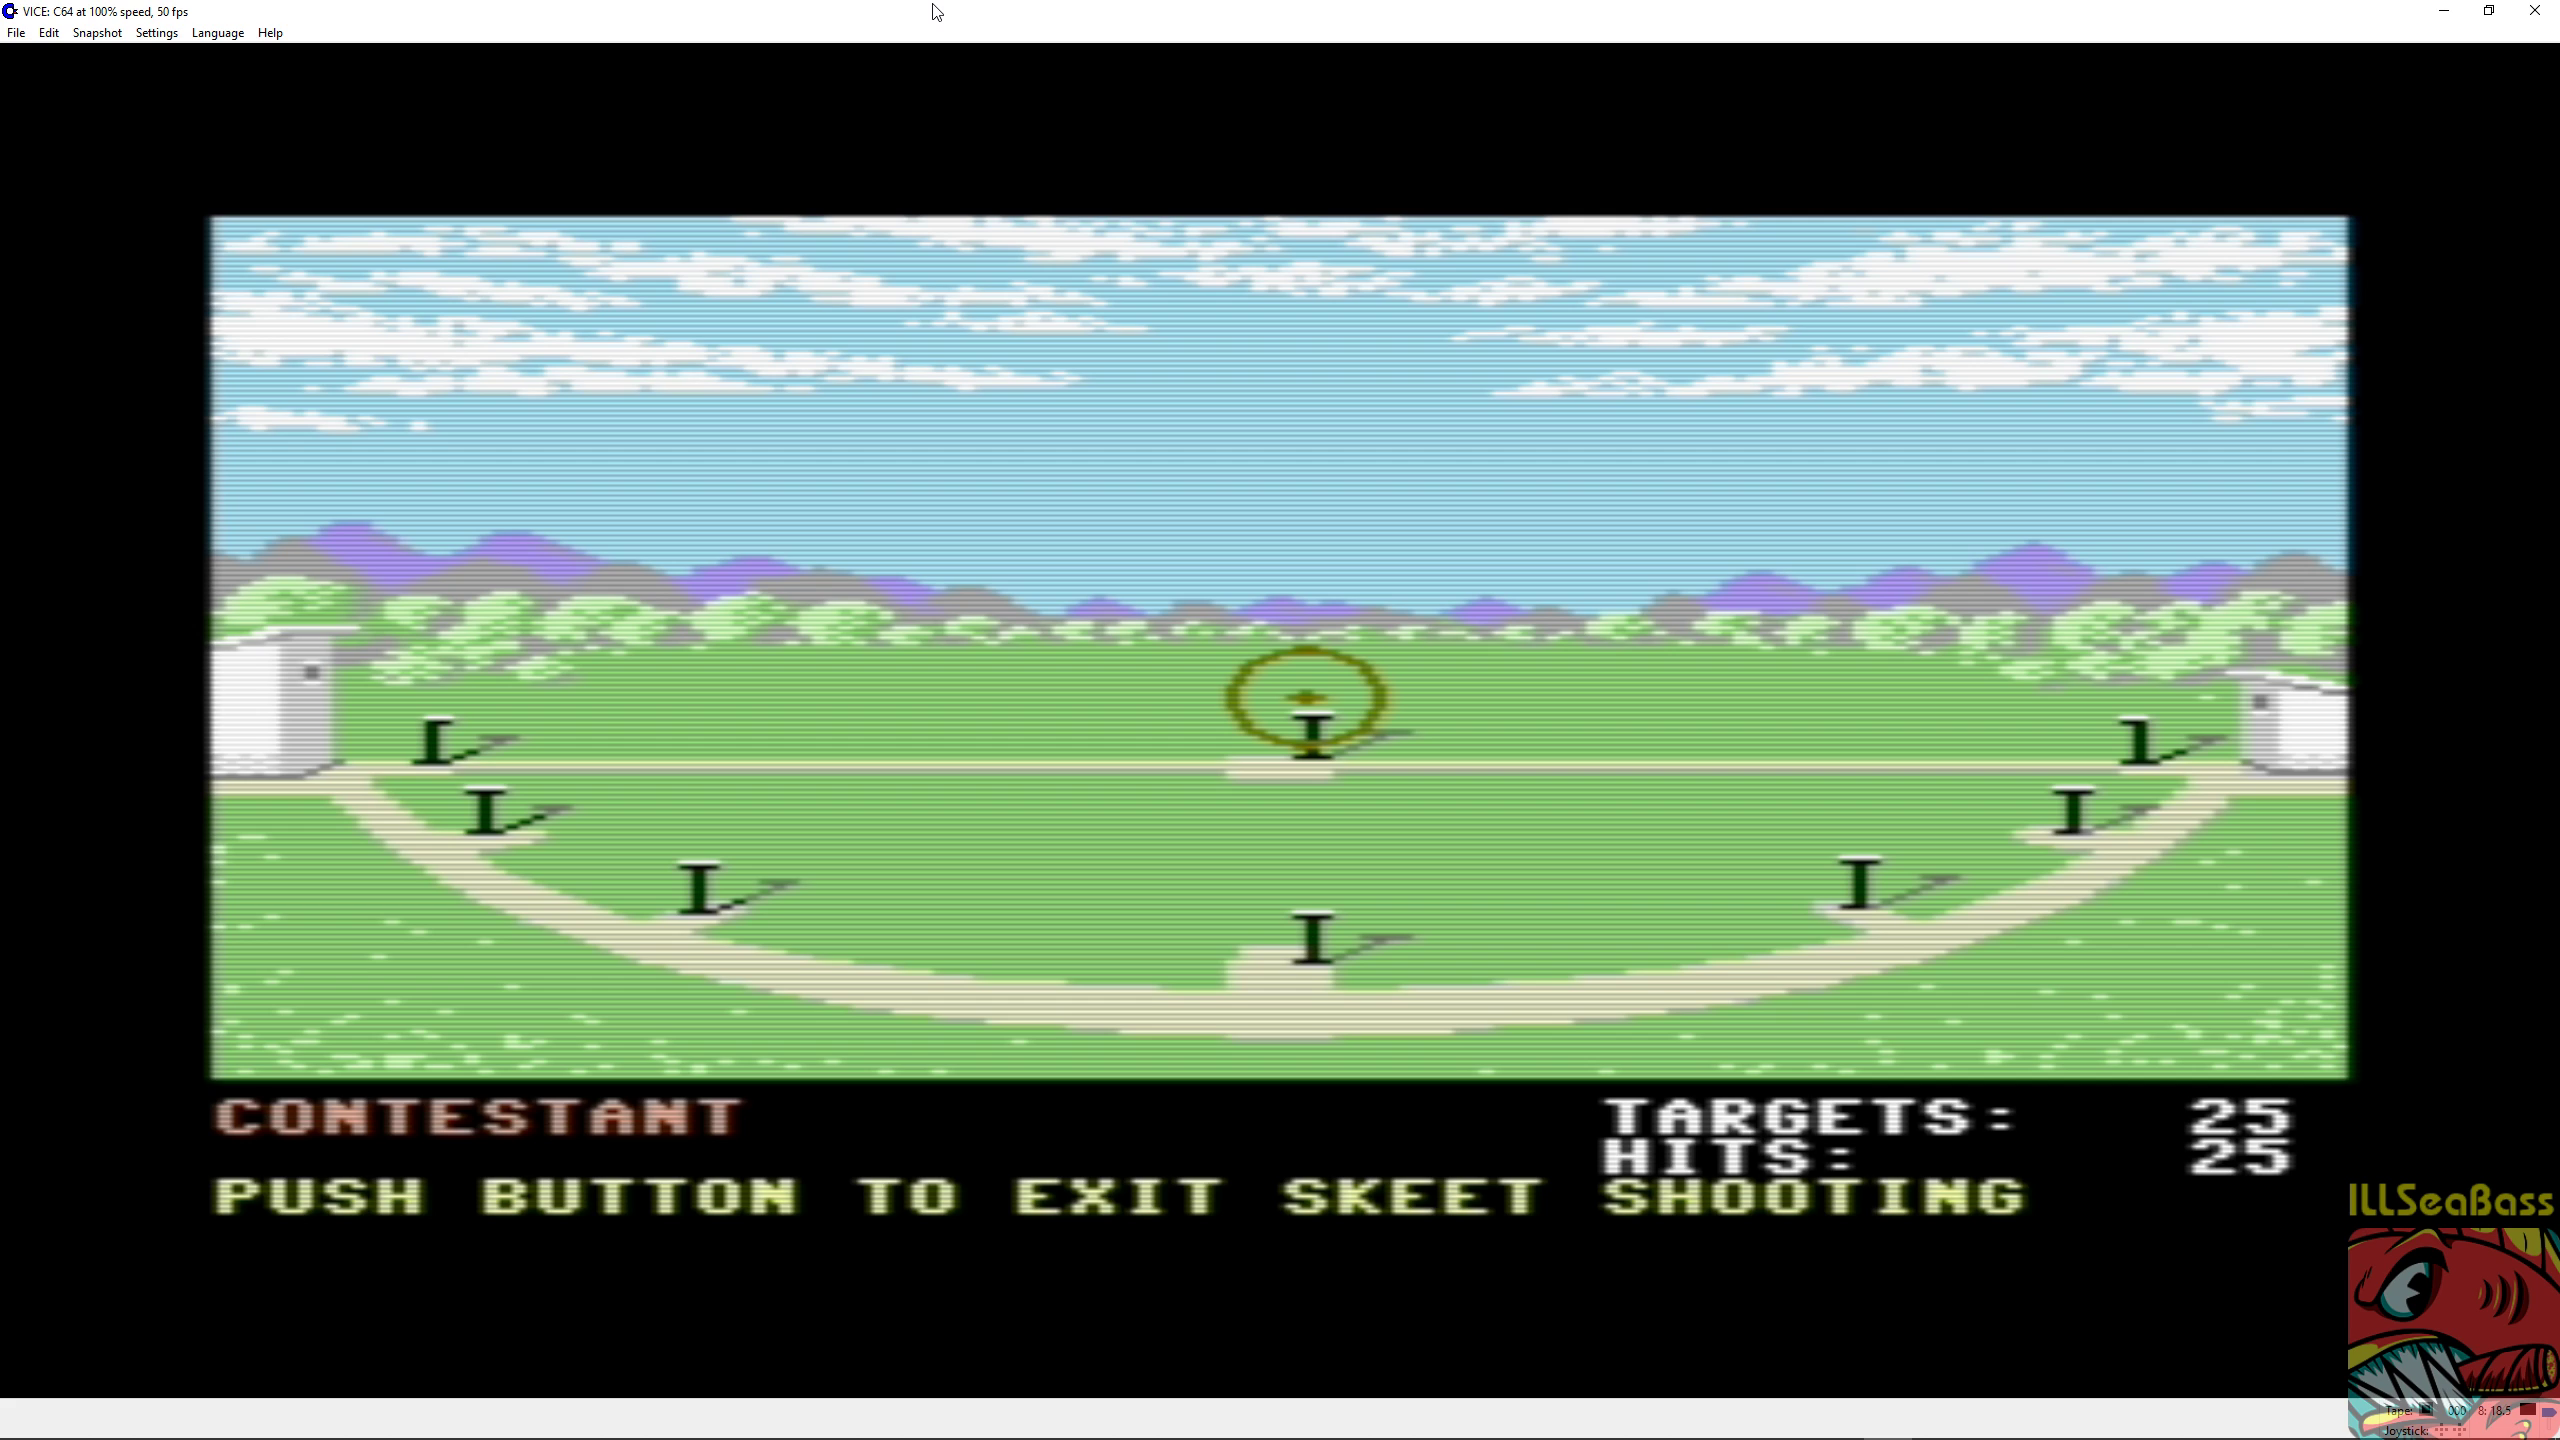 ILLSeaBass: Summer Games: Skeet Shooting (Commodore 64 Emulated) 25 points on 2018-09-10 21:14:44